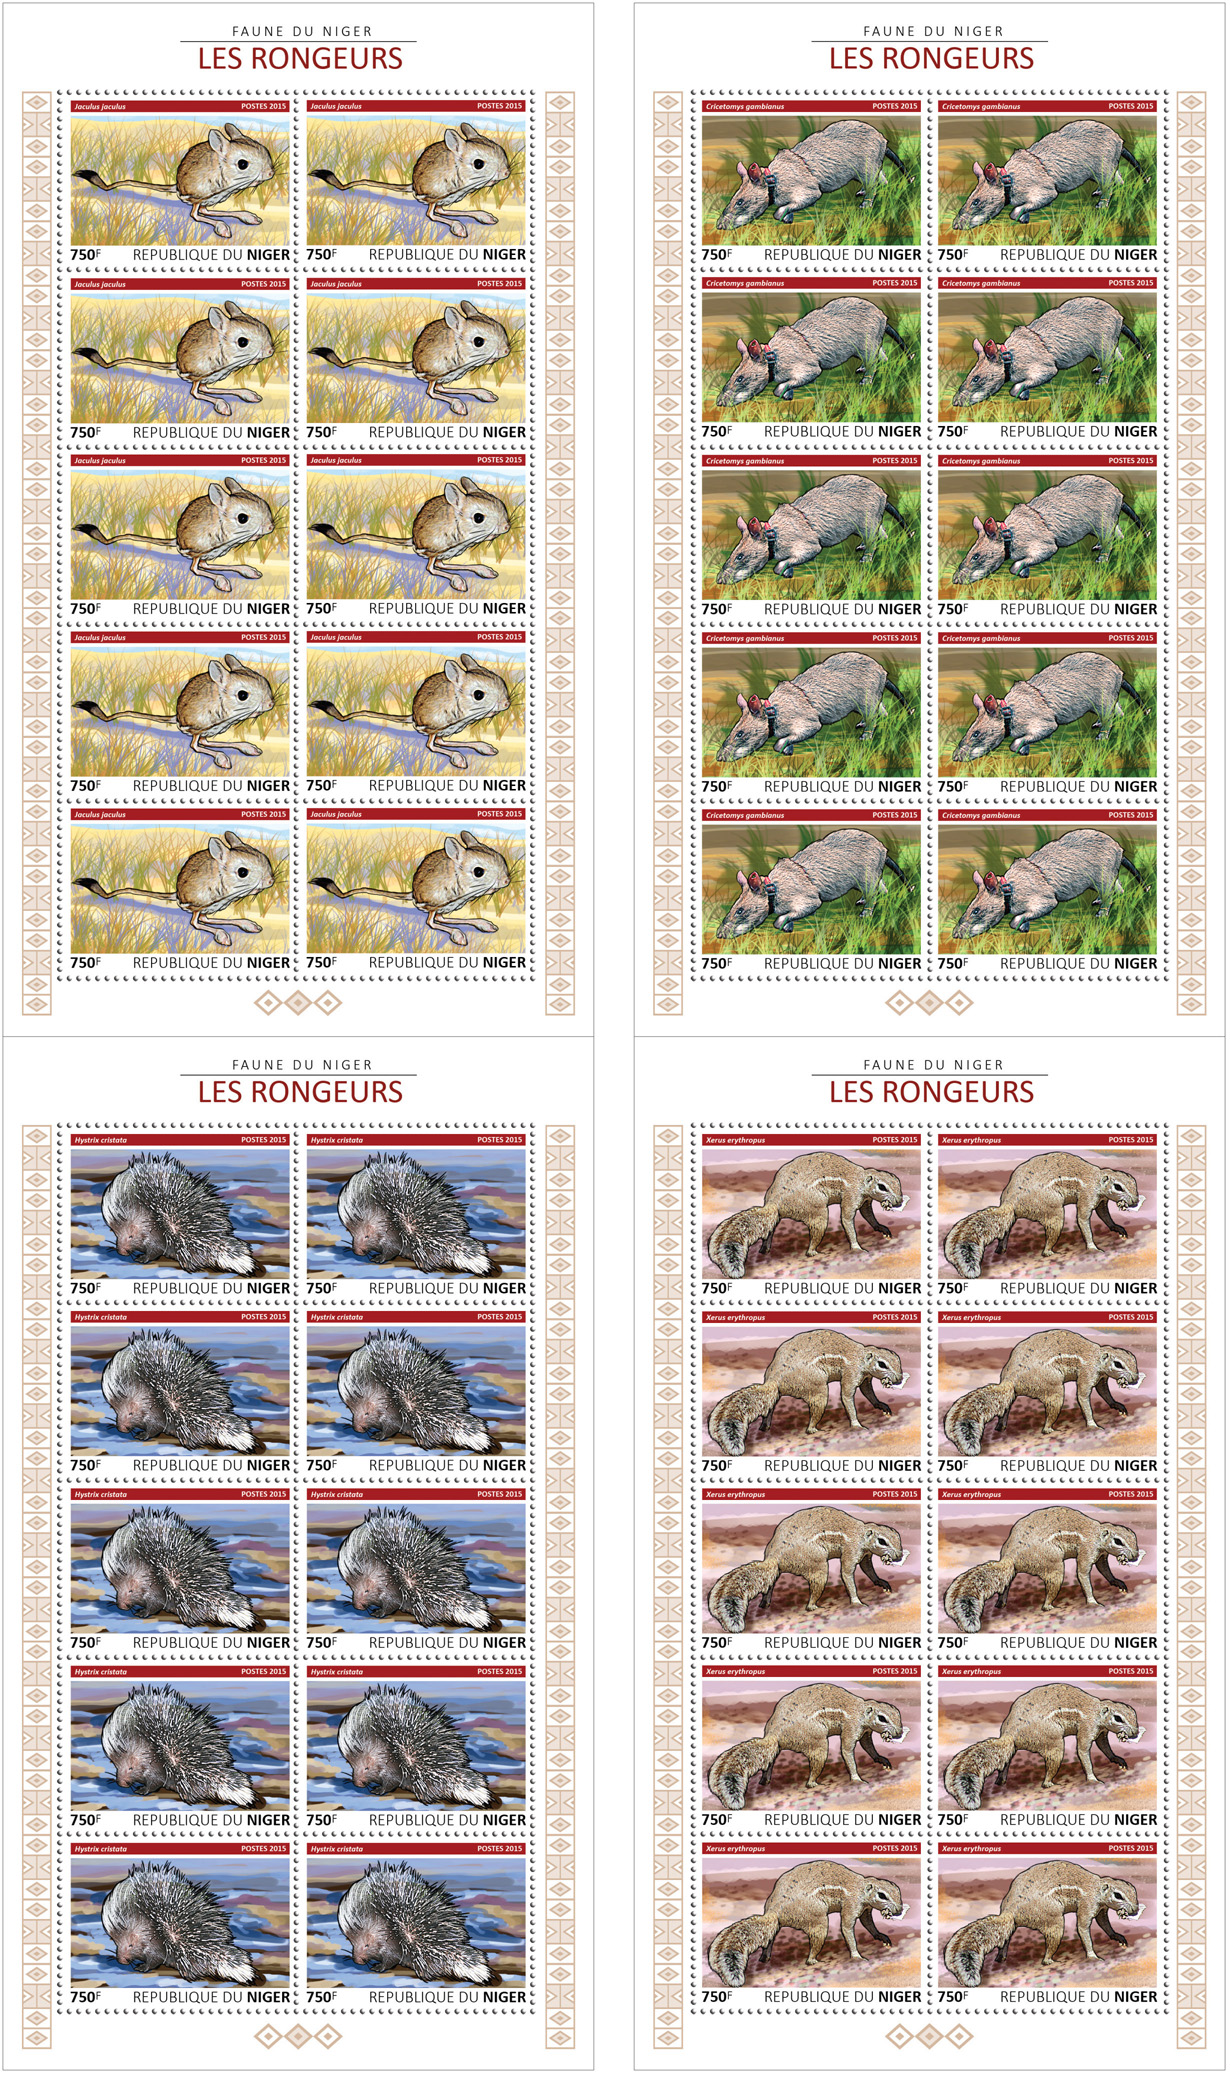 Rodents 4x10v - Issue of Niger postage stamps